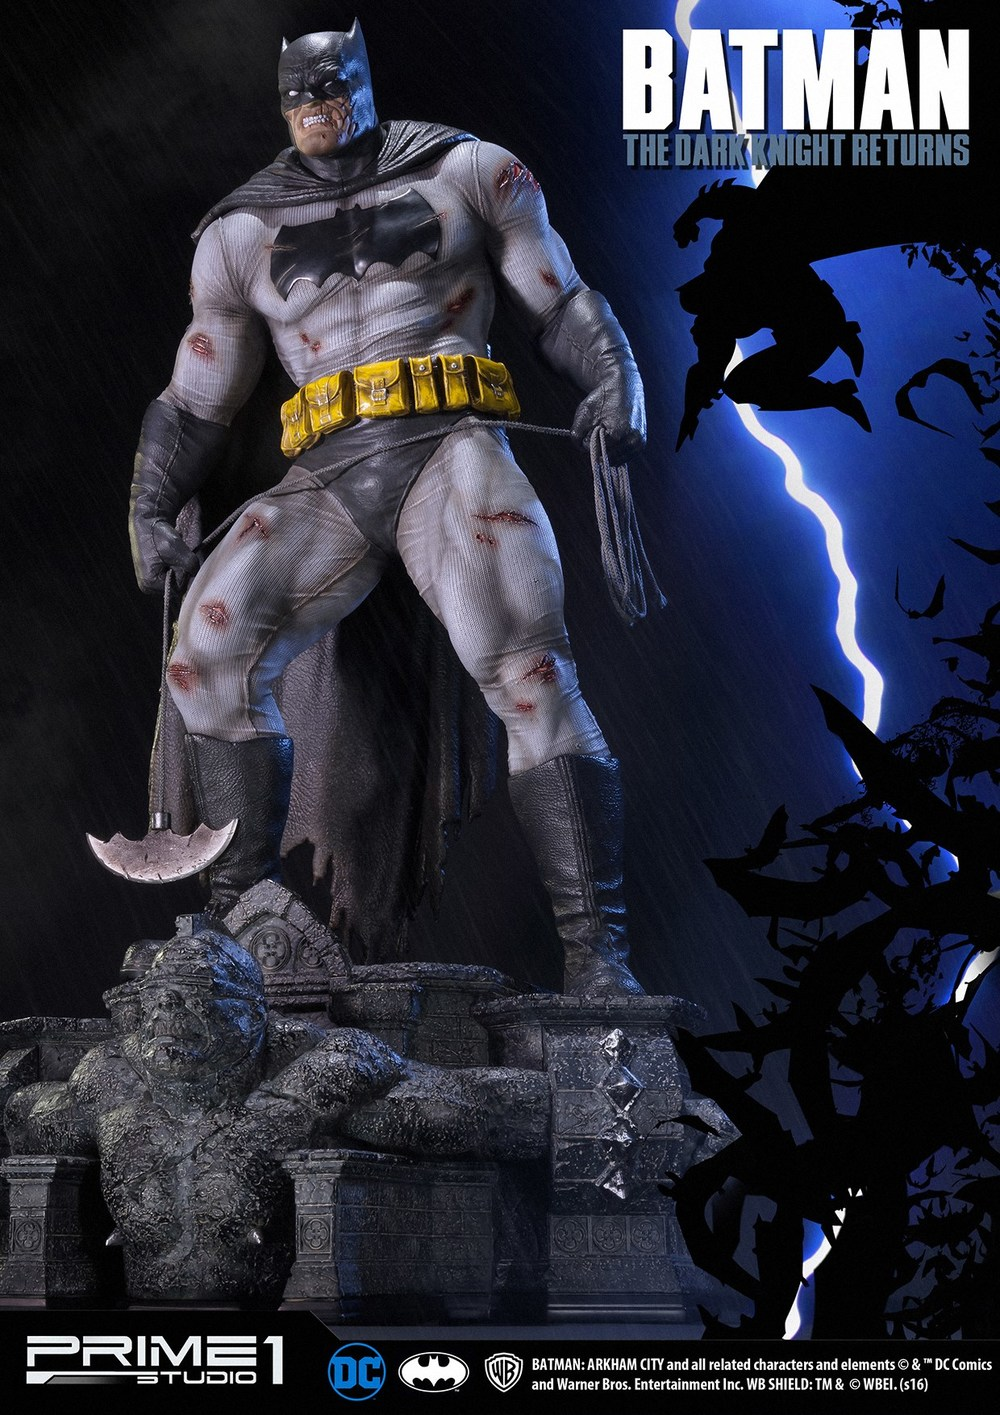 Prime-1-Dark-Knight-Returns-Batman-006.jpg